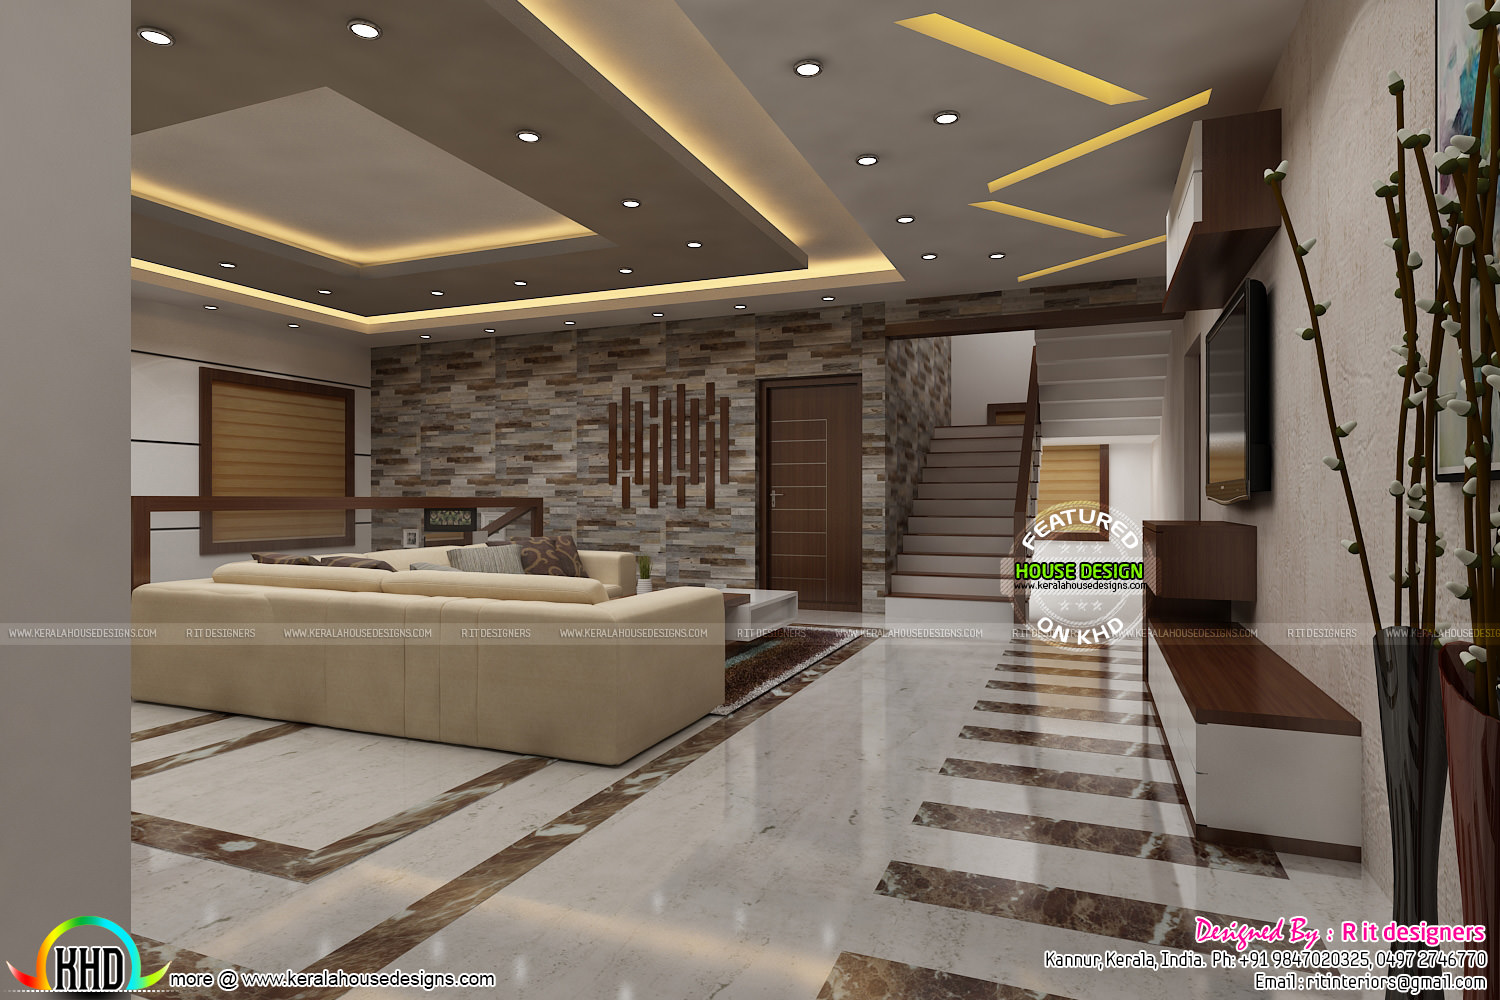 Most modern kerala living room interior kerala home Contemporary interior design